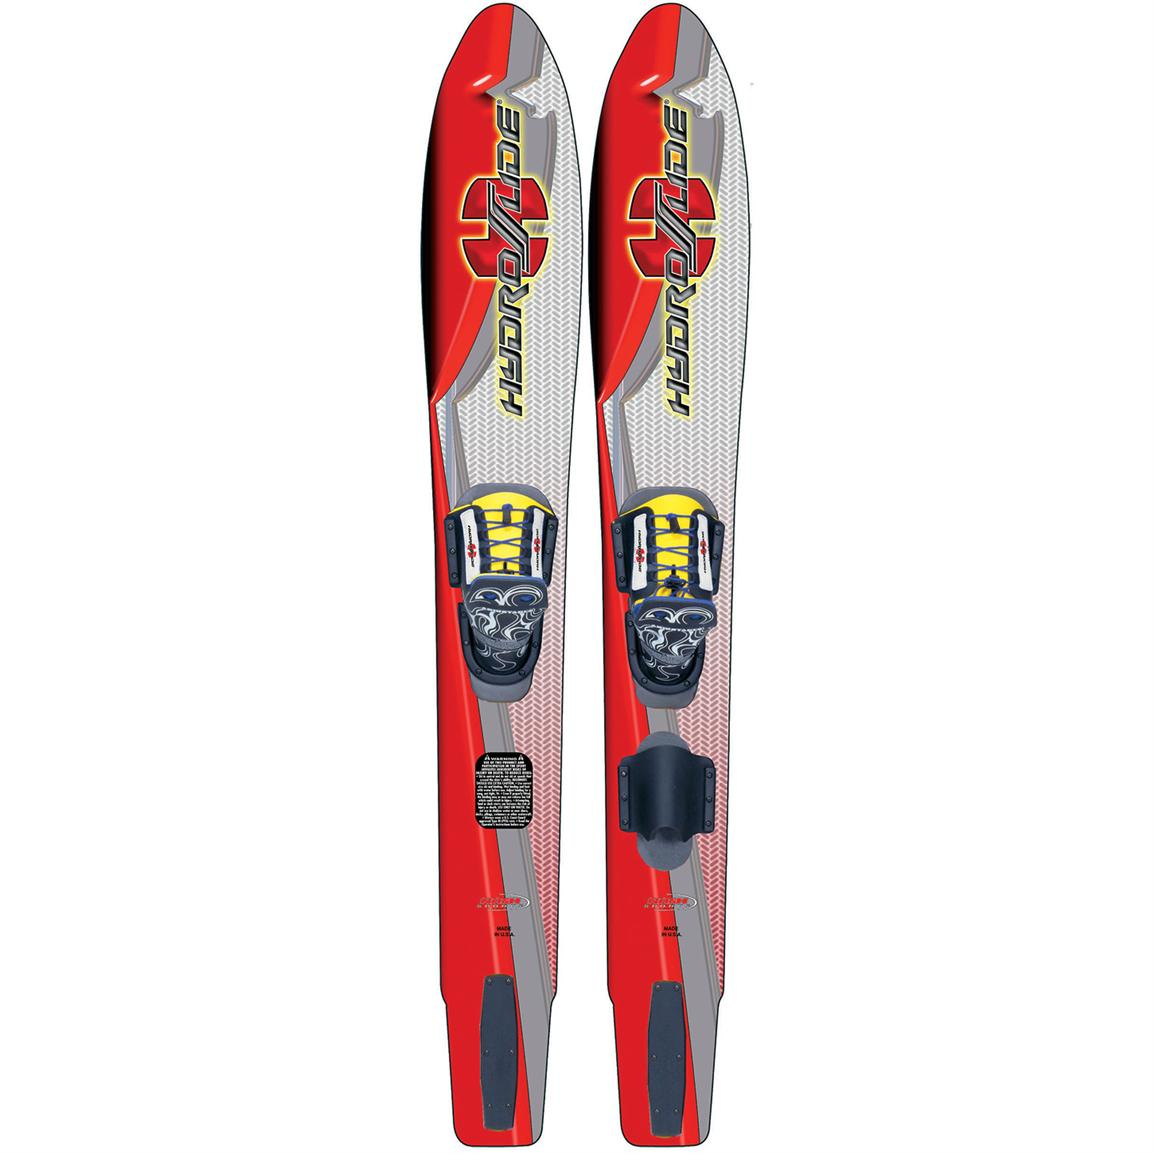 HydroSlide Shaped Adult Water Skis with Lace-Up Bindings